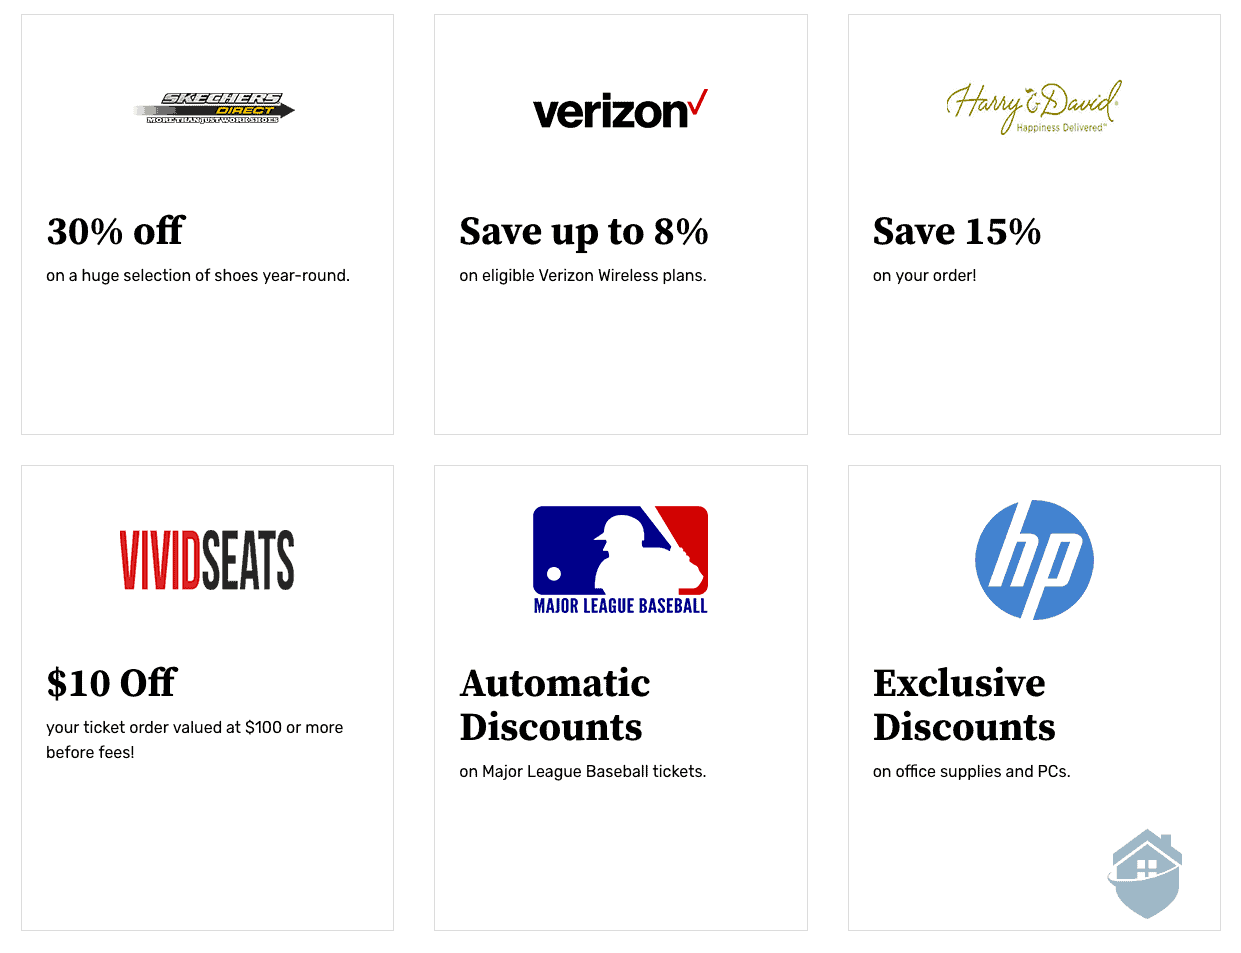 IDShield Discounts